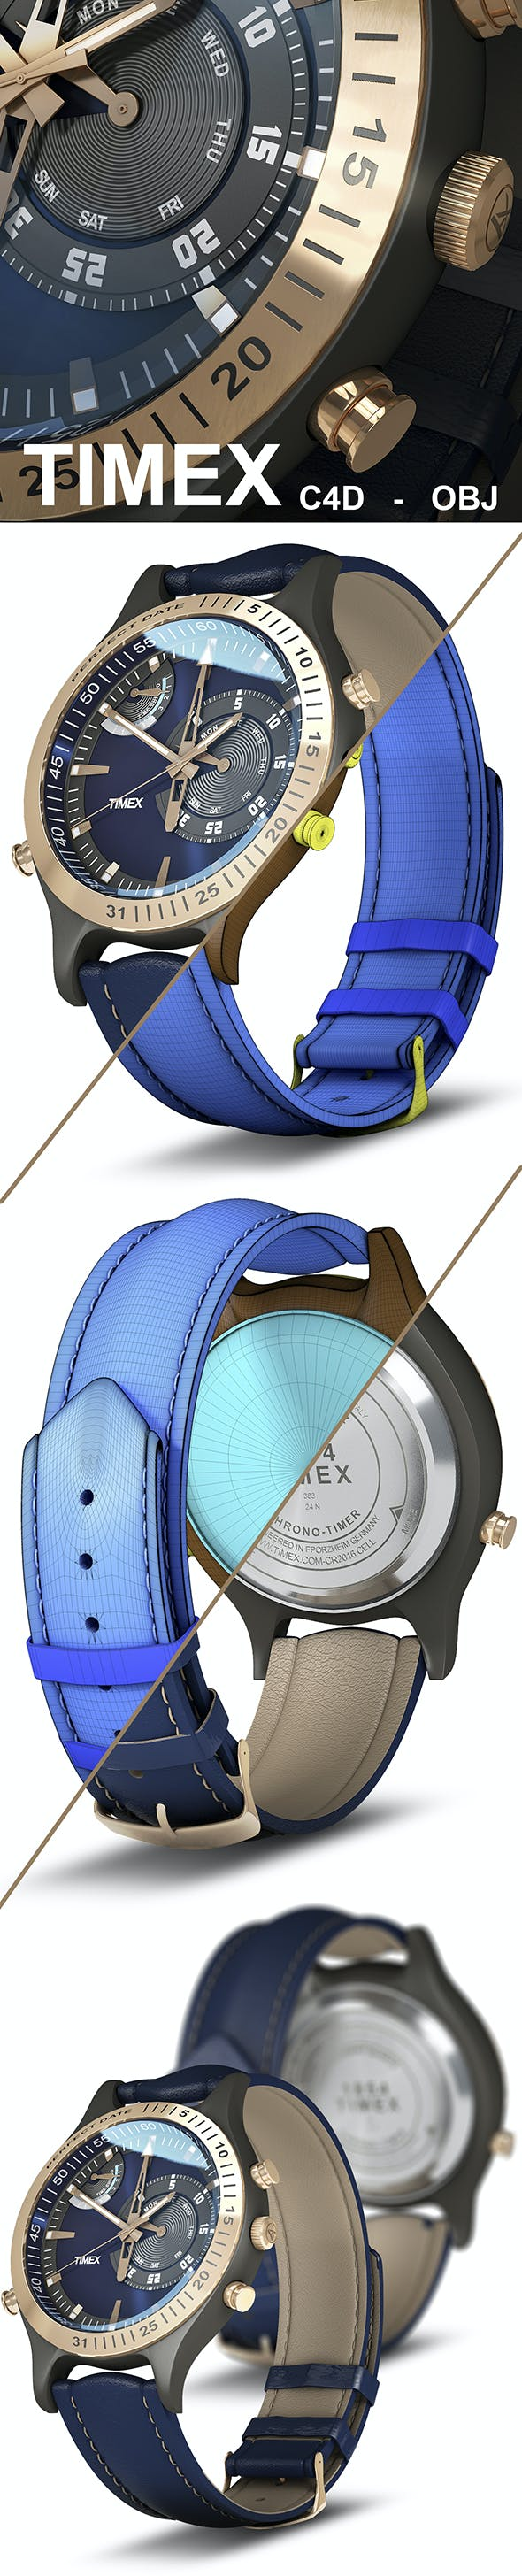 Timex Chronograph Detailed Watch 3D Model - 3DOcean Item for Sale